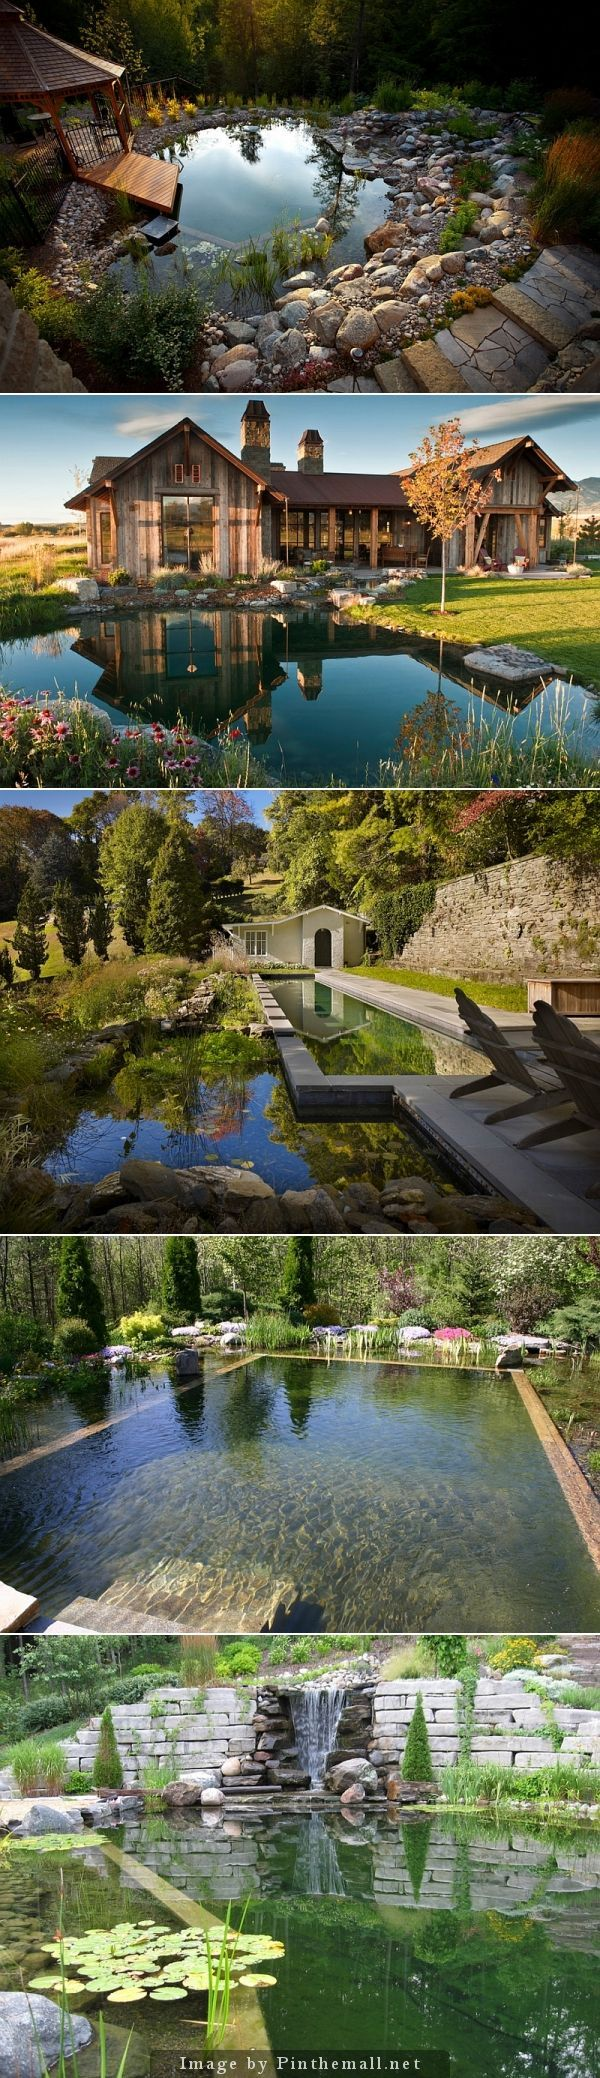 Look at these beautiful natural swimming pools!